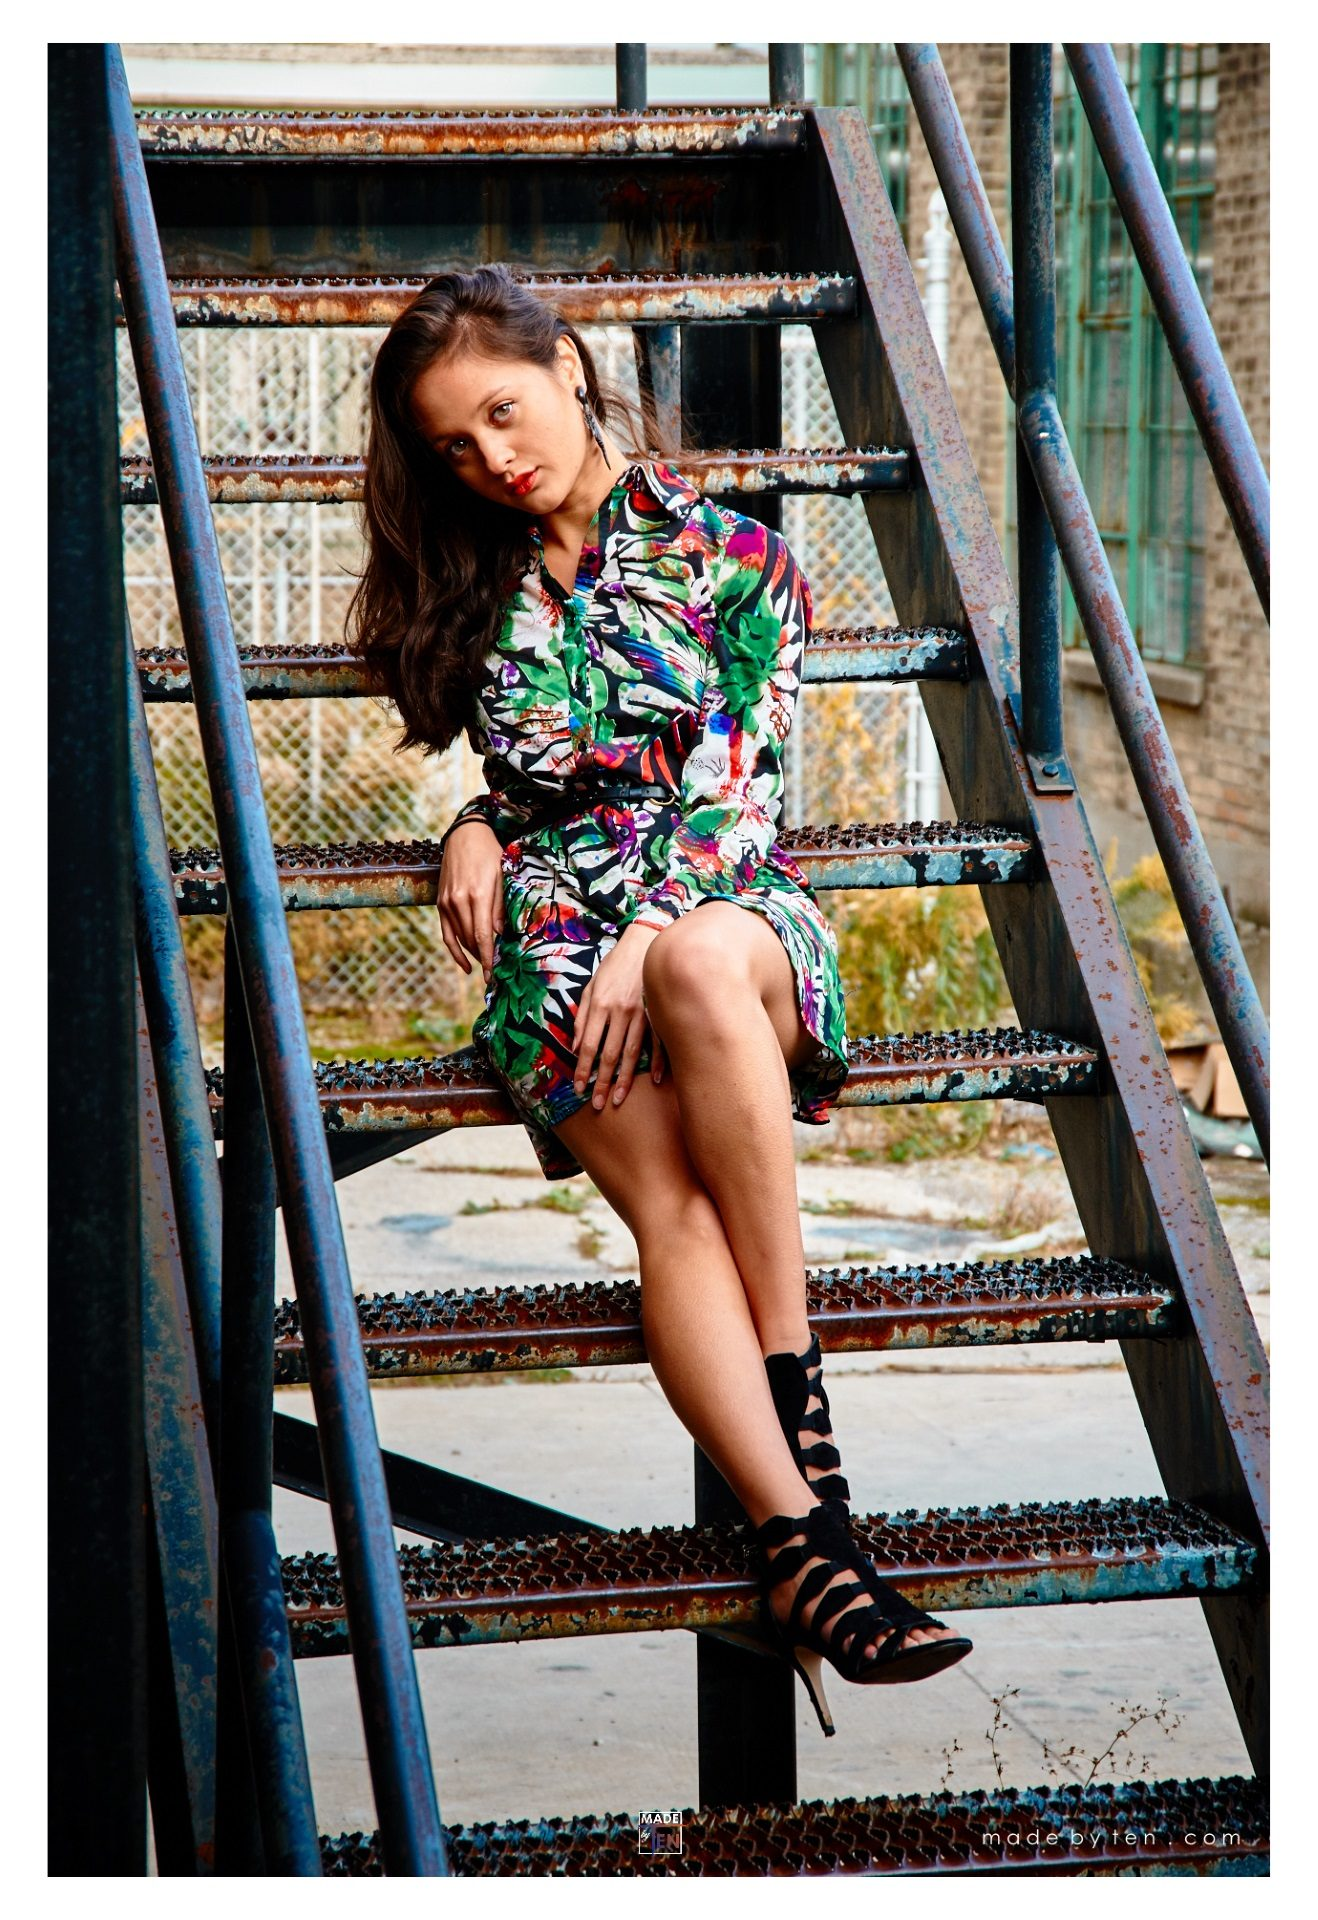 Building Steps Fashion Editorial - GTA Women Lifestyle Photography